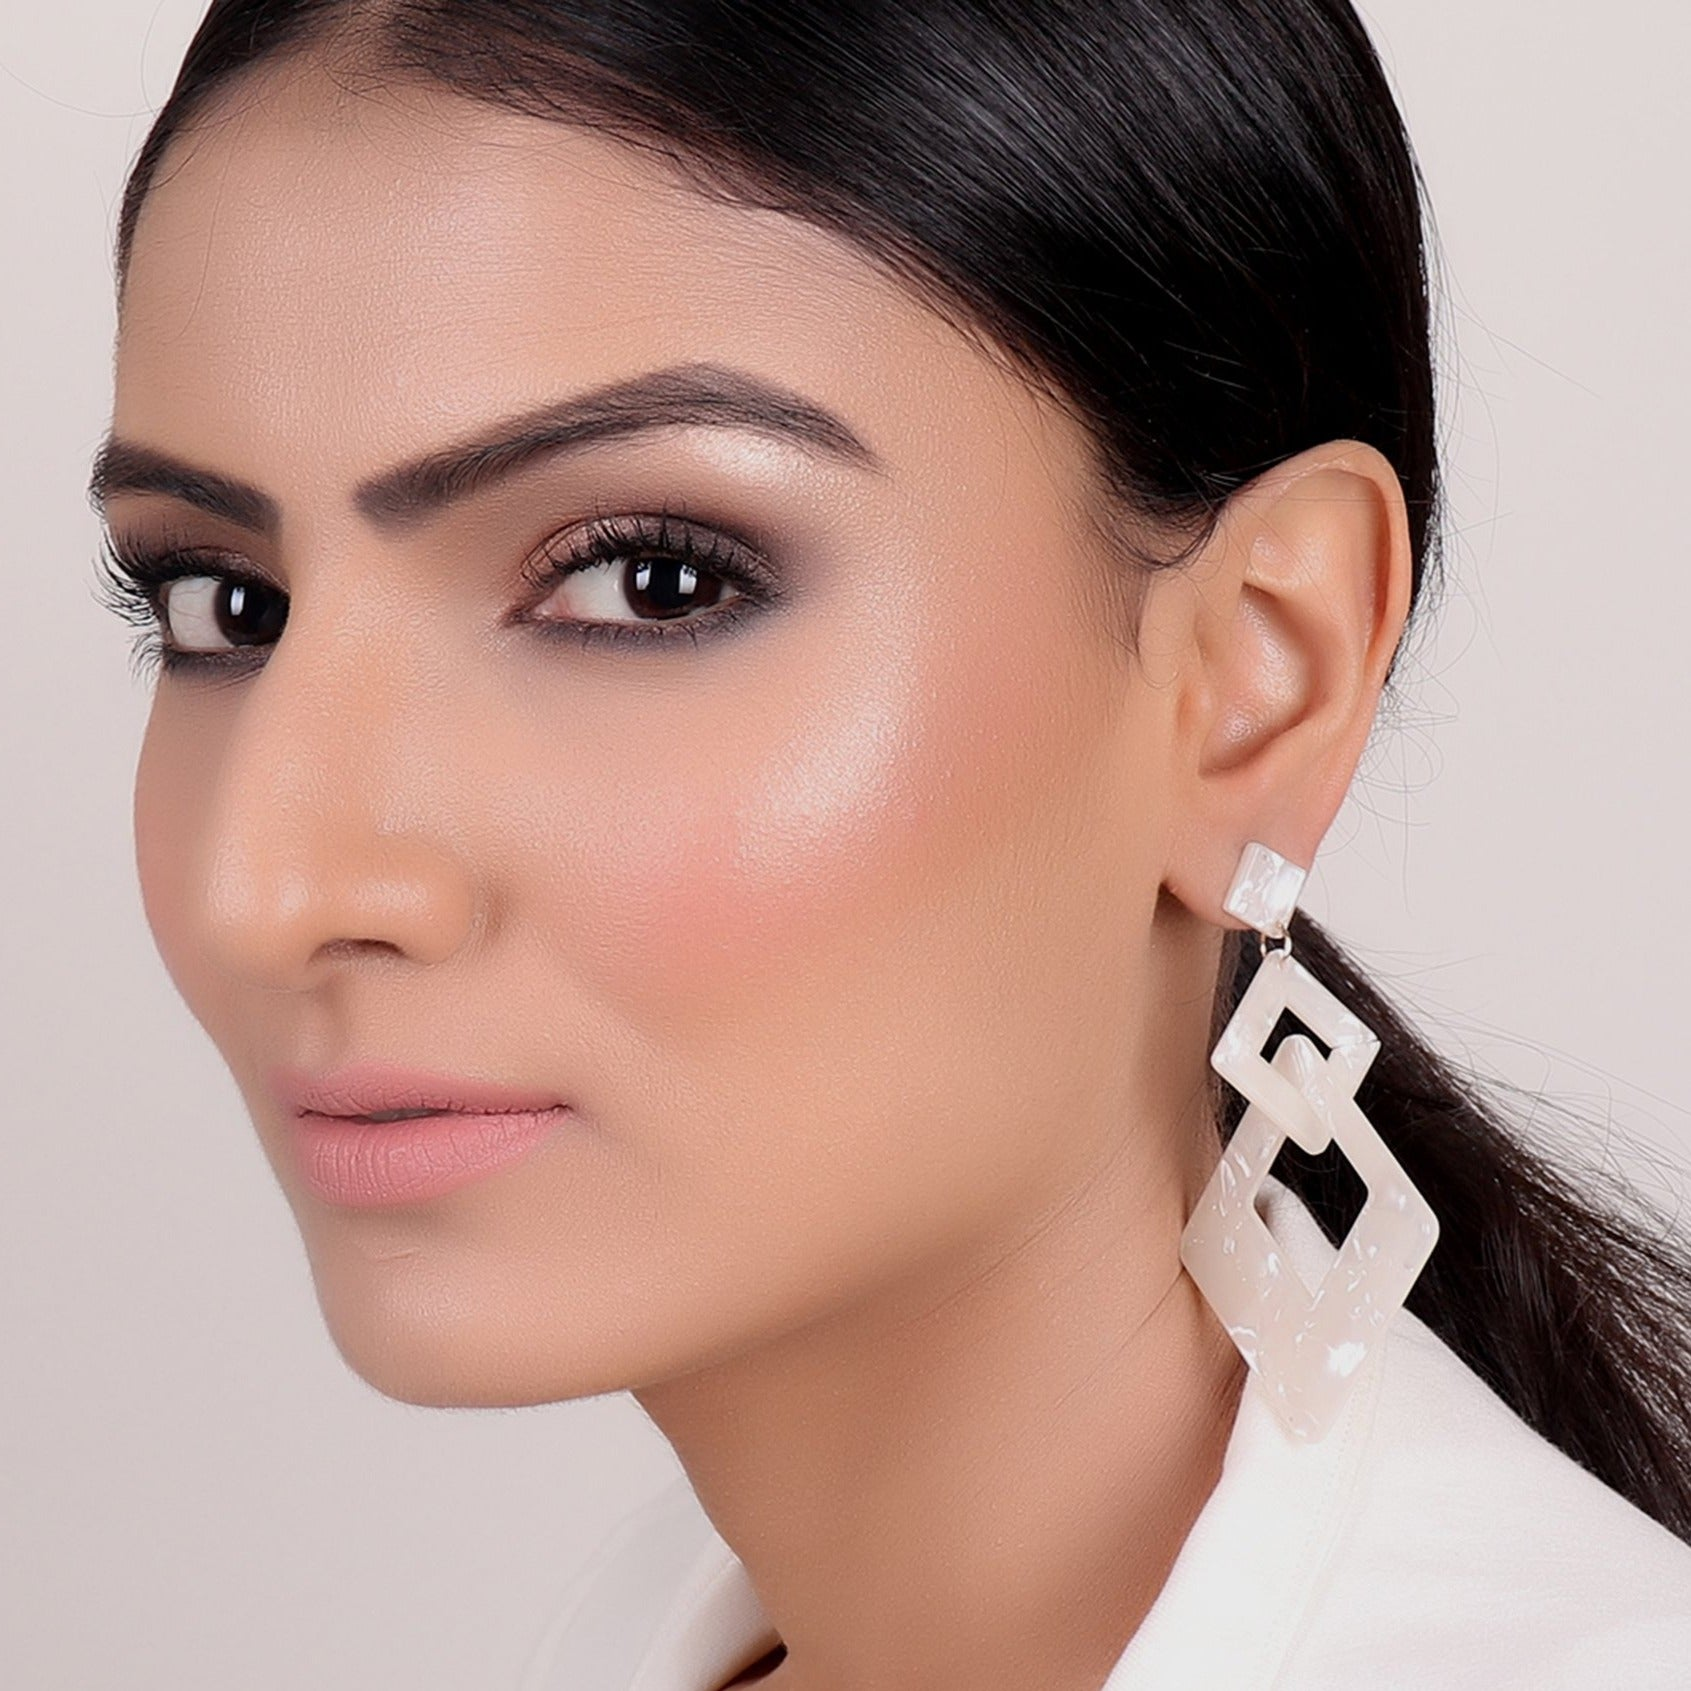 Earrings,Off White Danglers - Cippele Multi Store